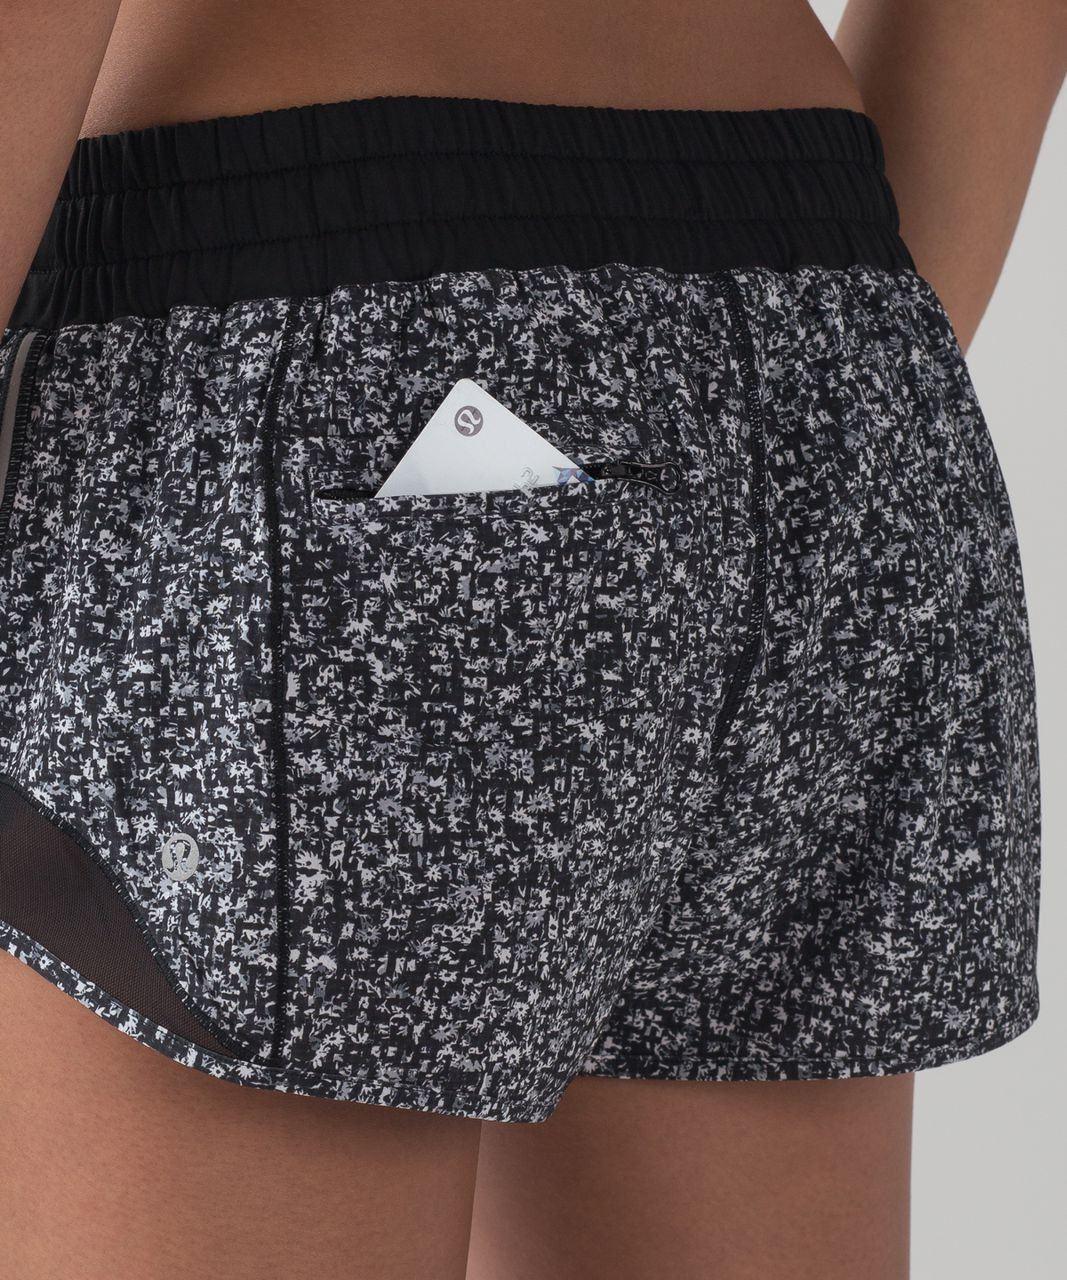 "Lululemon Hotty Hot Short (2 1/2"" ) - Daisy Dust Alpine White Black / Black"